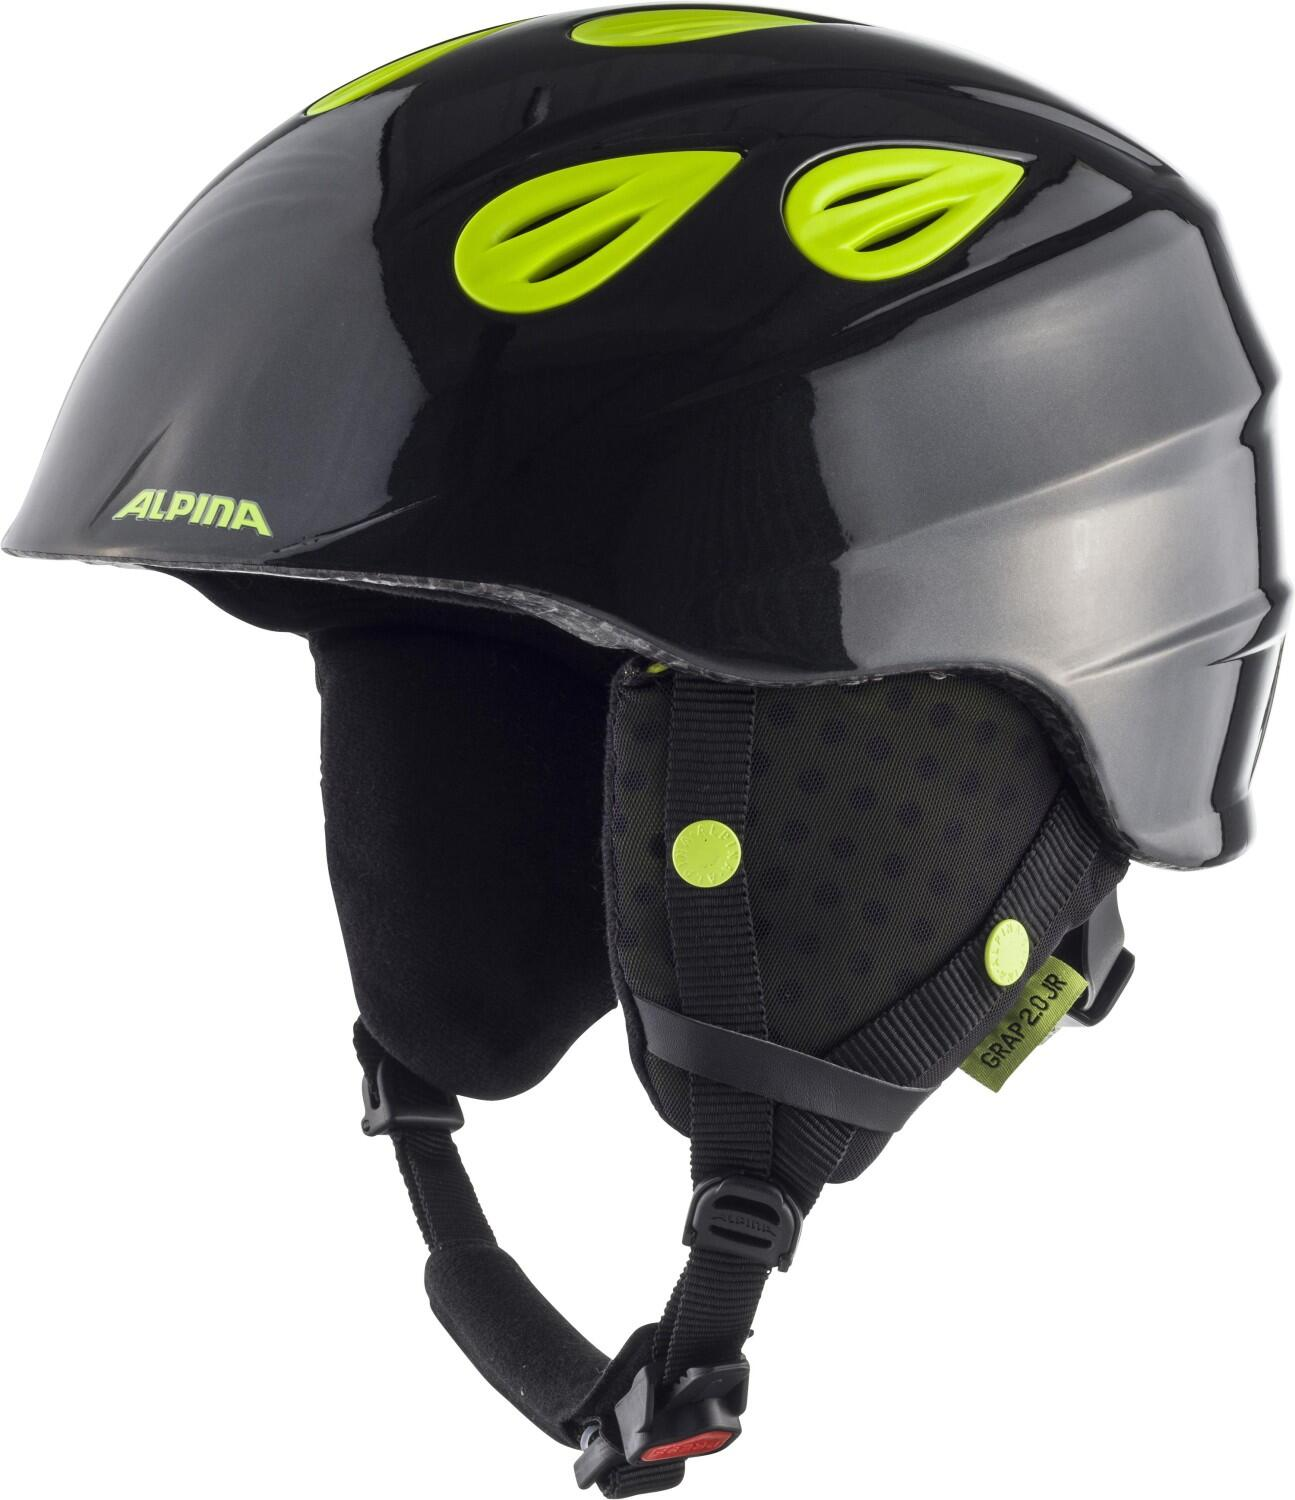 Fürski - Alpina Grap 2.0 Junior Kinderskihelm (Größe 51 54 cm, 36 charcoal neon yellow) - Onlineshop